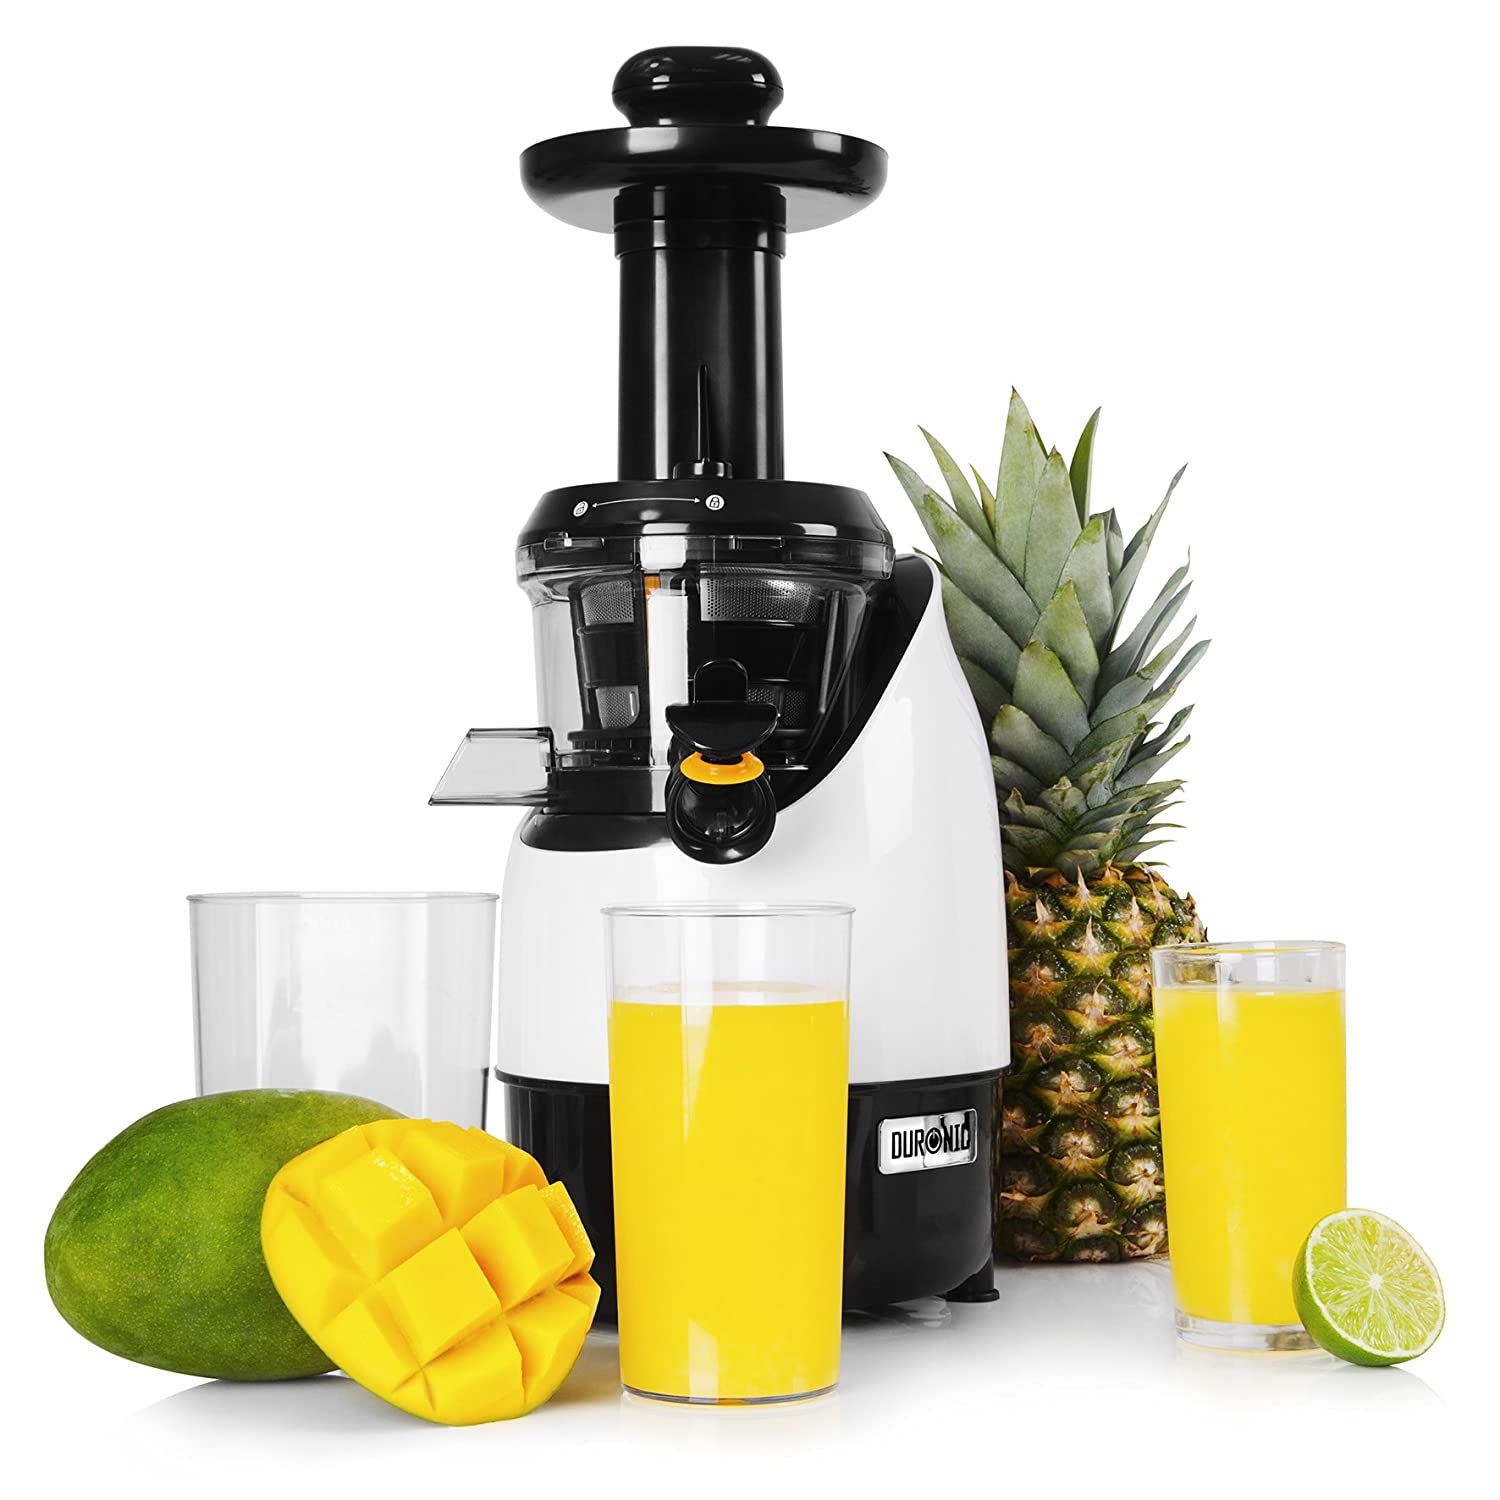 Duronic JE2 Slow Masticating Juicer Cold Press Extractor Fruit and Vegetable Juicing Juice Machine